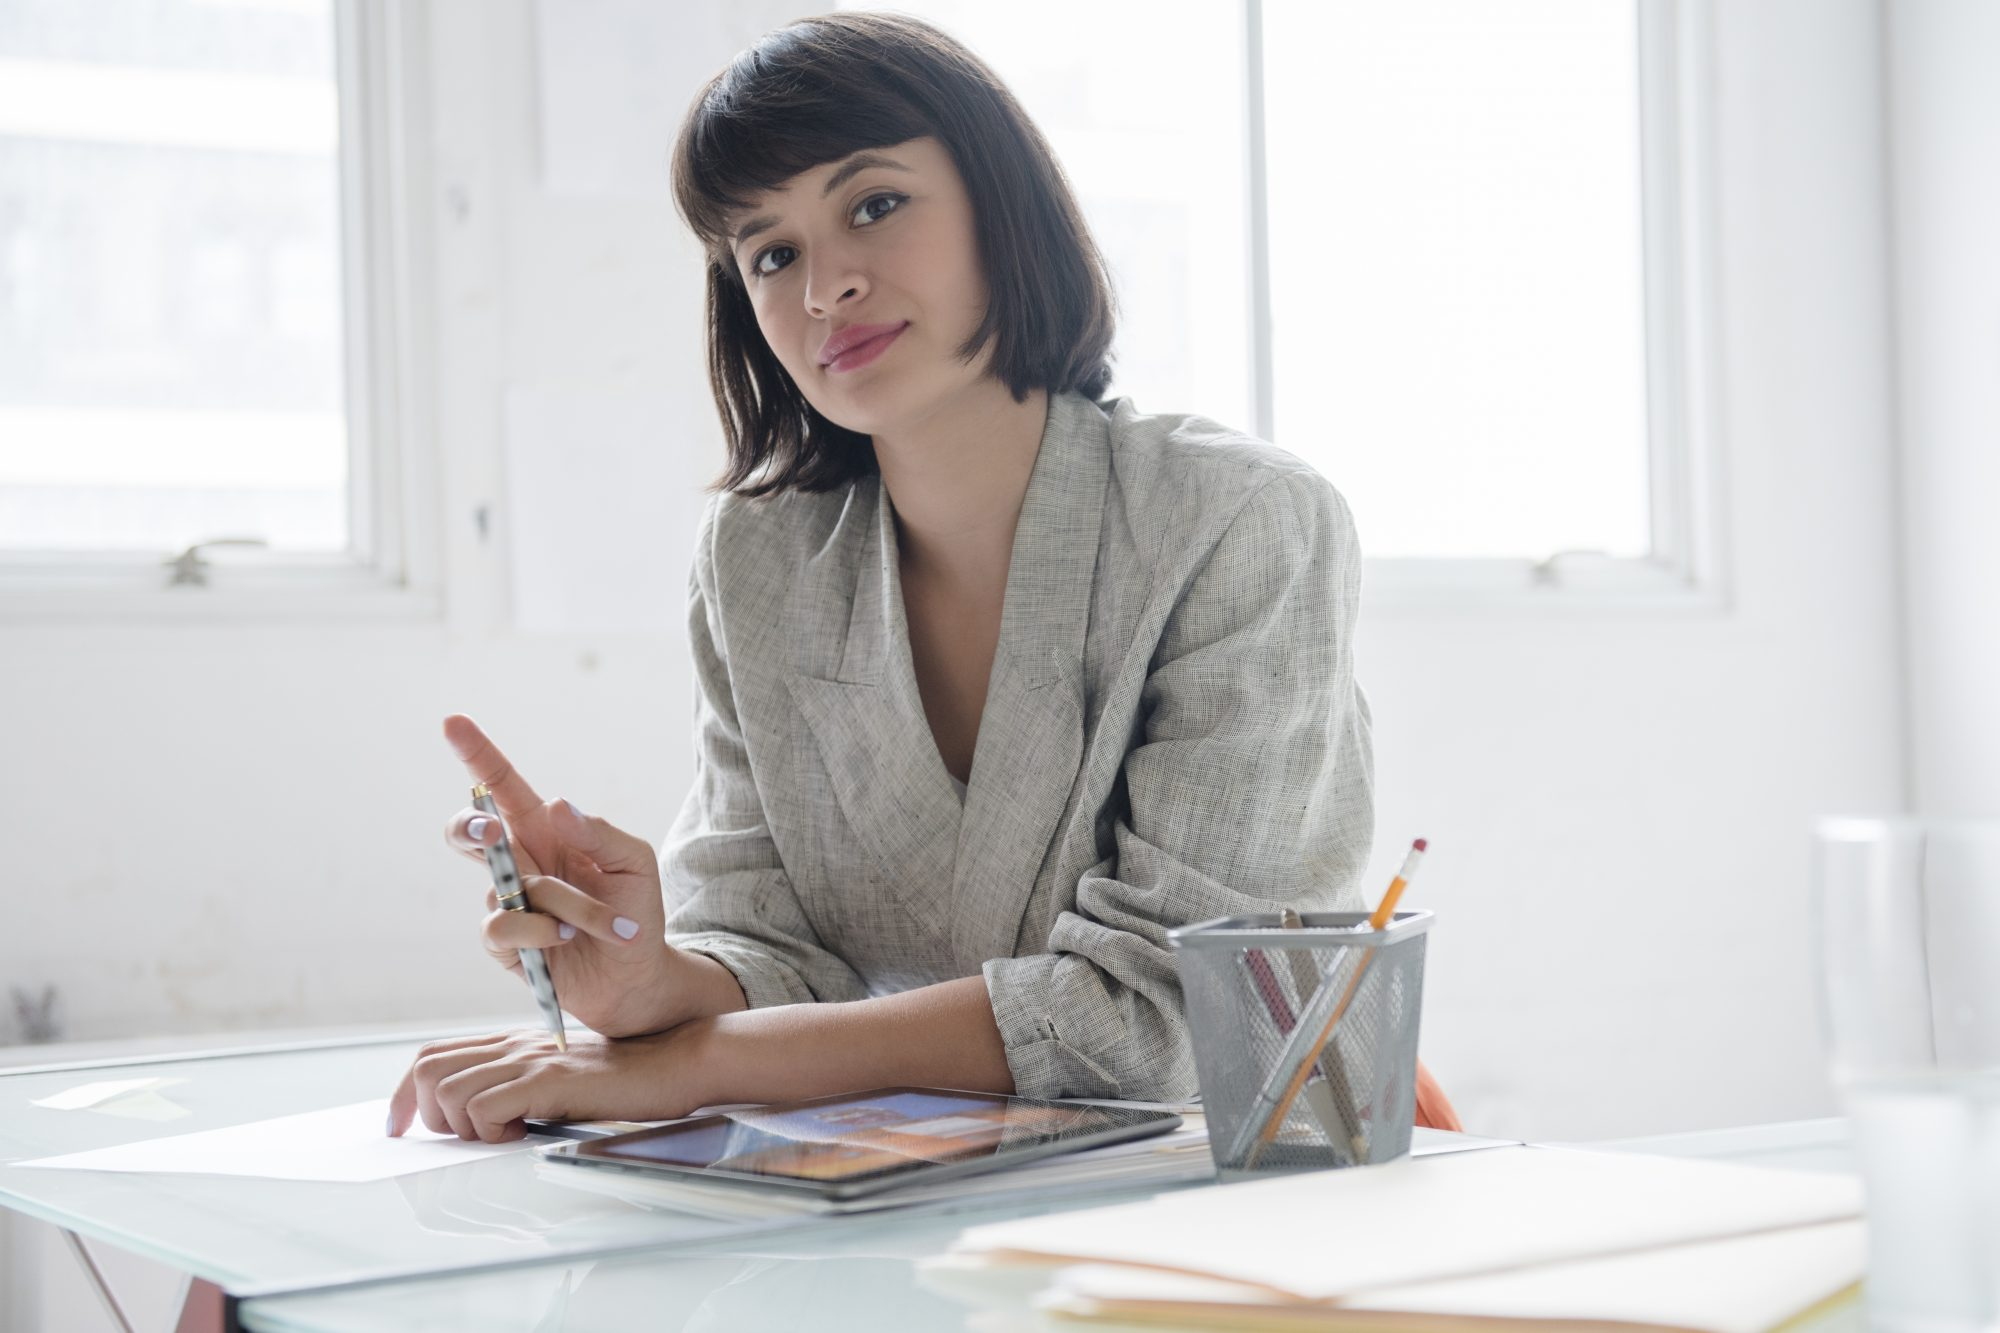 Hispanic businesswoman in office with digital tablet